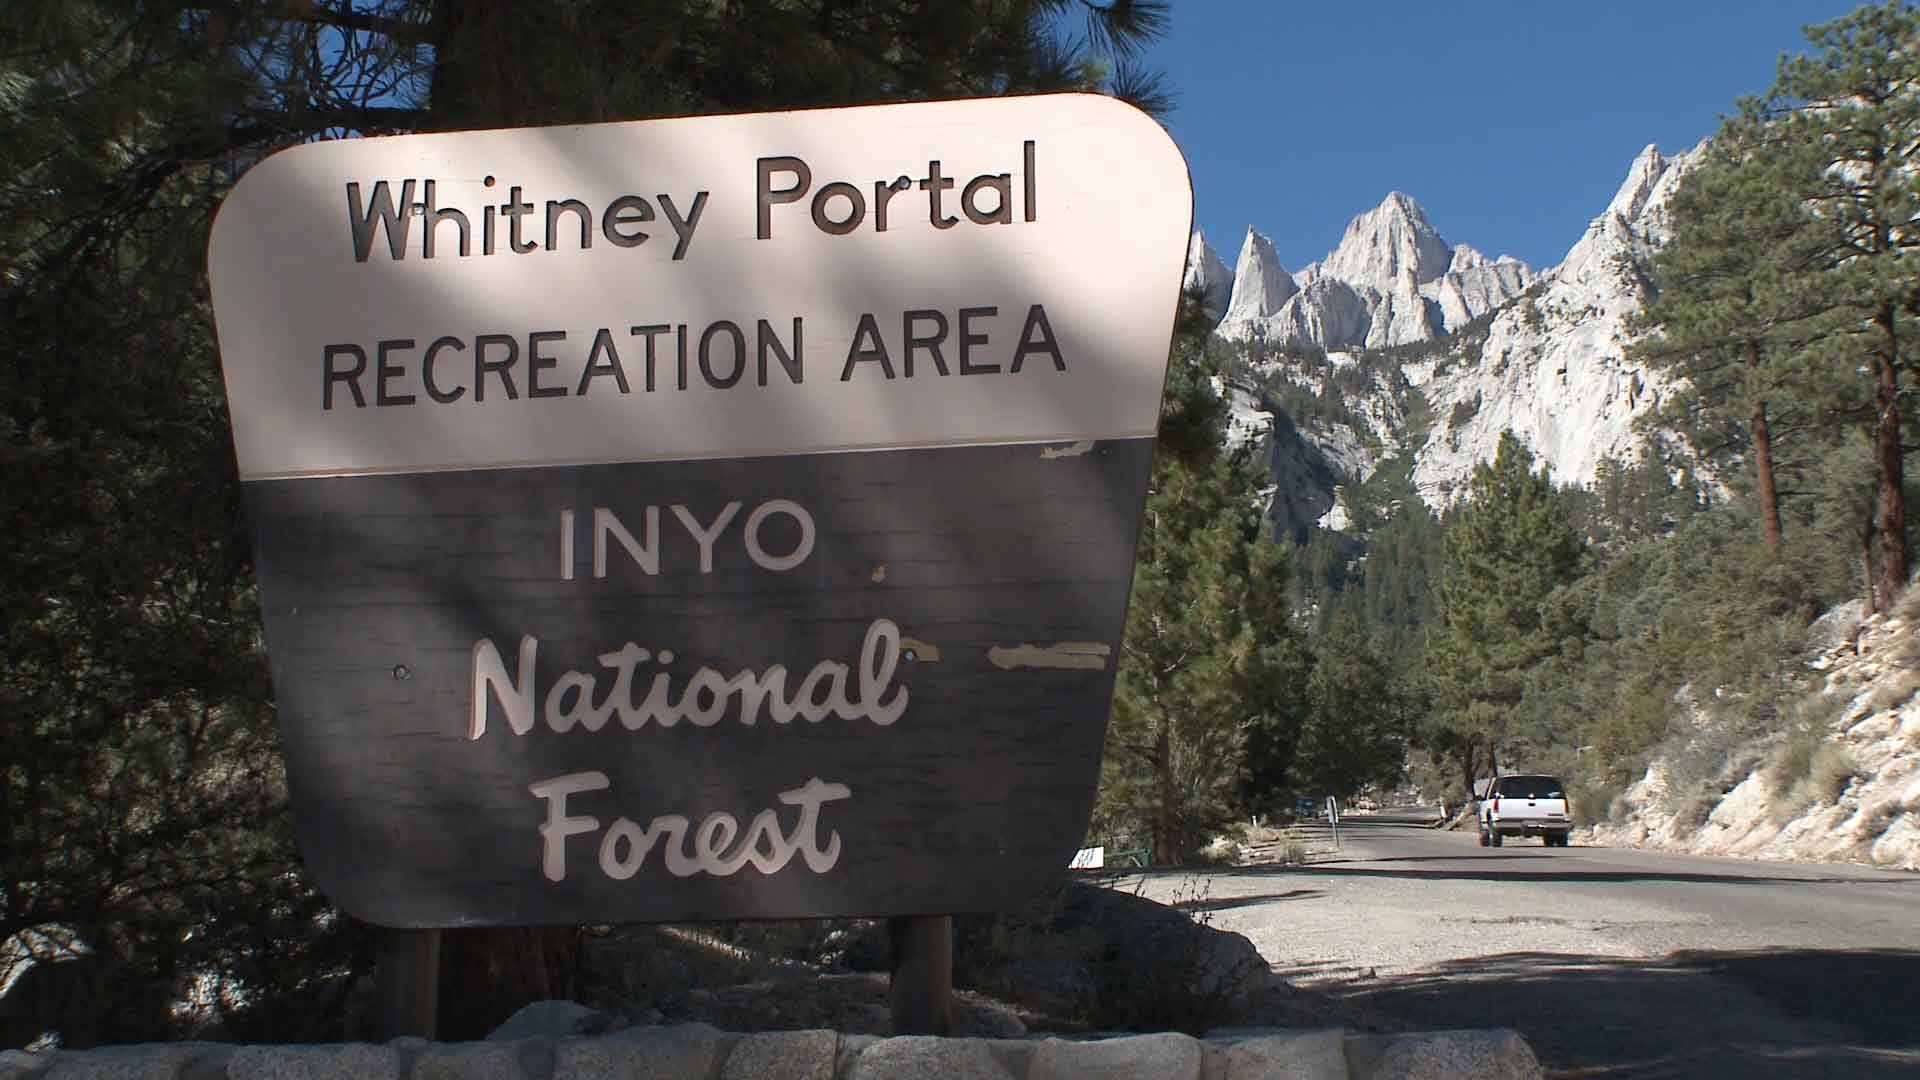 Sign of Whitney Portal Recreation Area.